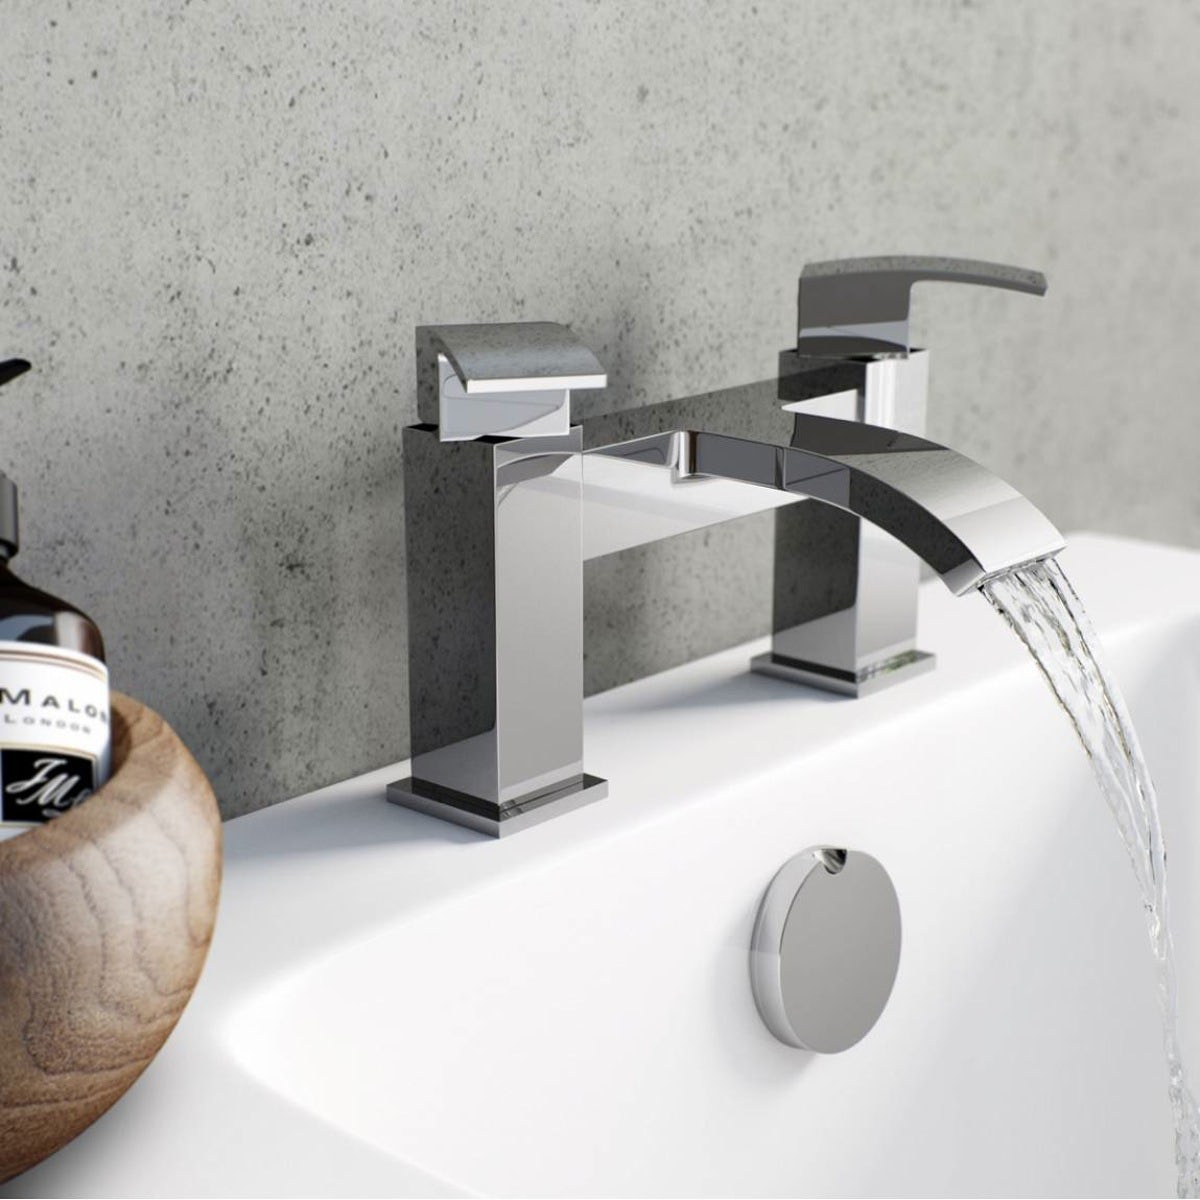 How to Fit a Bath Mixer Tap | VictoriaPlum.com